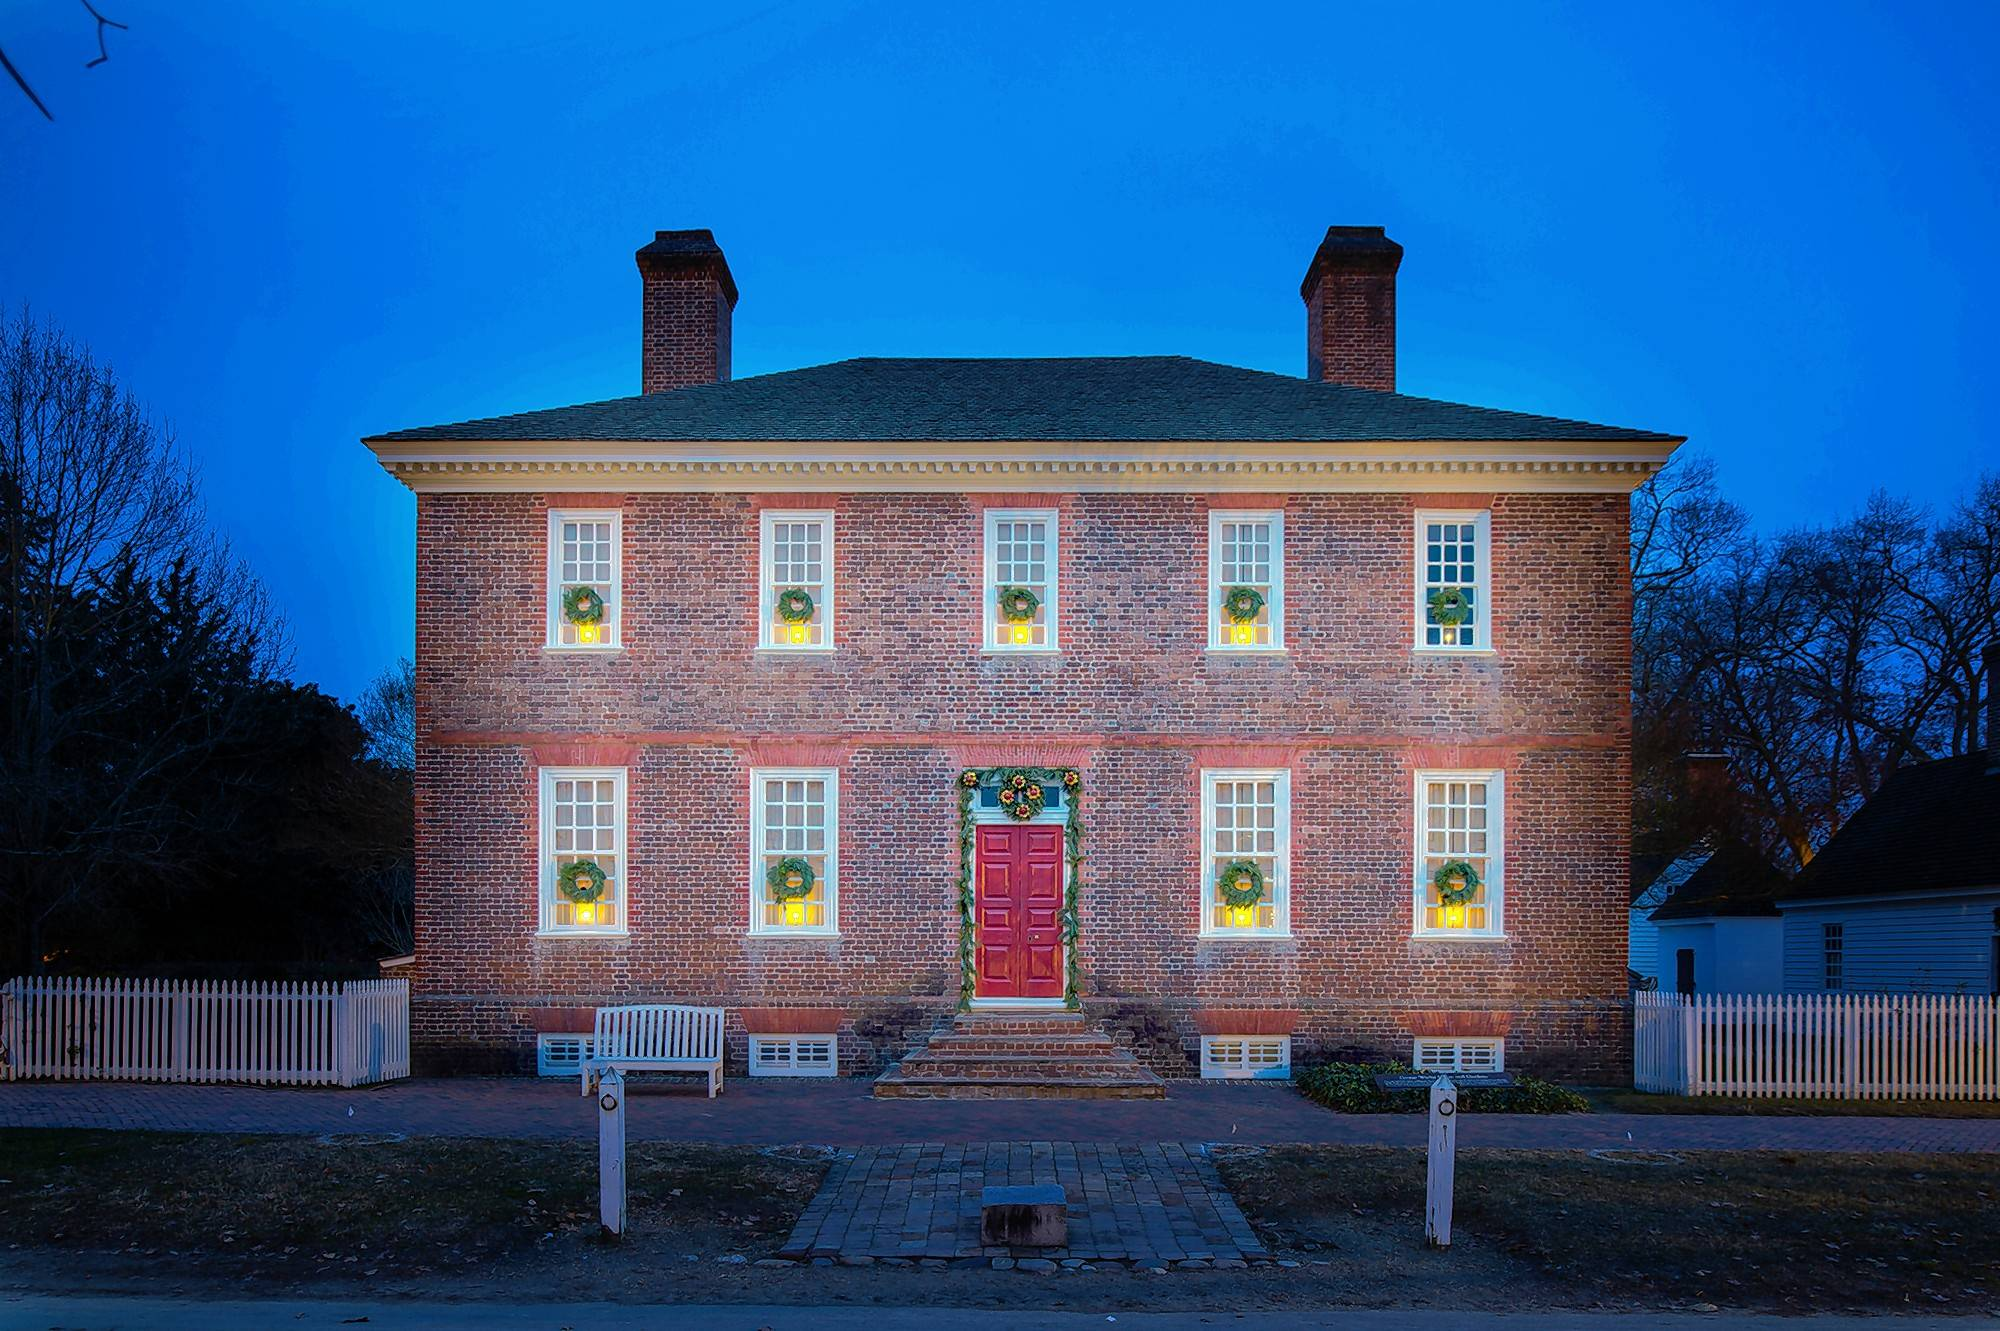 The George Wythe House, built in the mid-1750s, is decorated with greenery and fruit for the holidays and has a candle in every window. Wythe was Virginia's first signer of the Declaration of Independence.